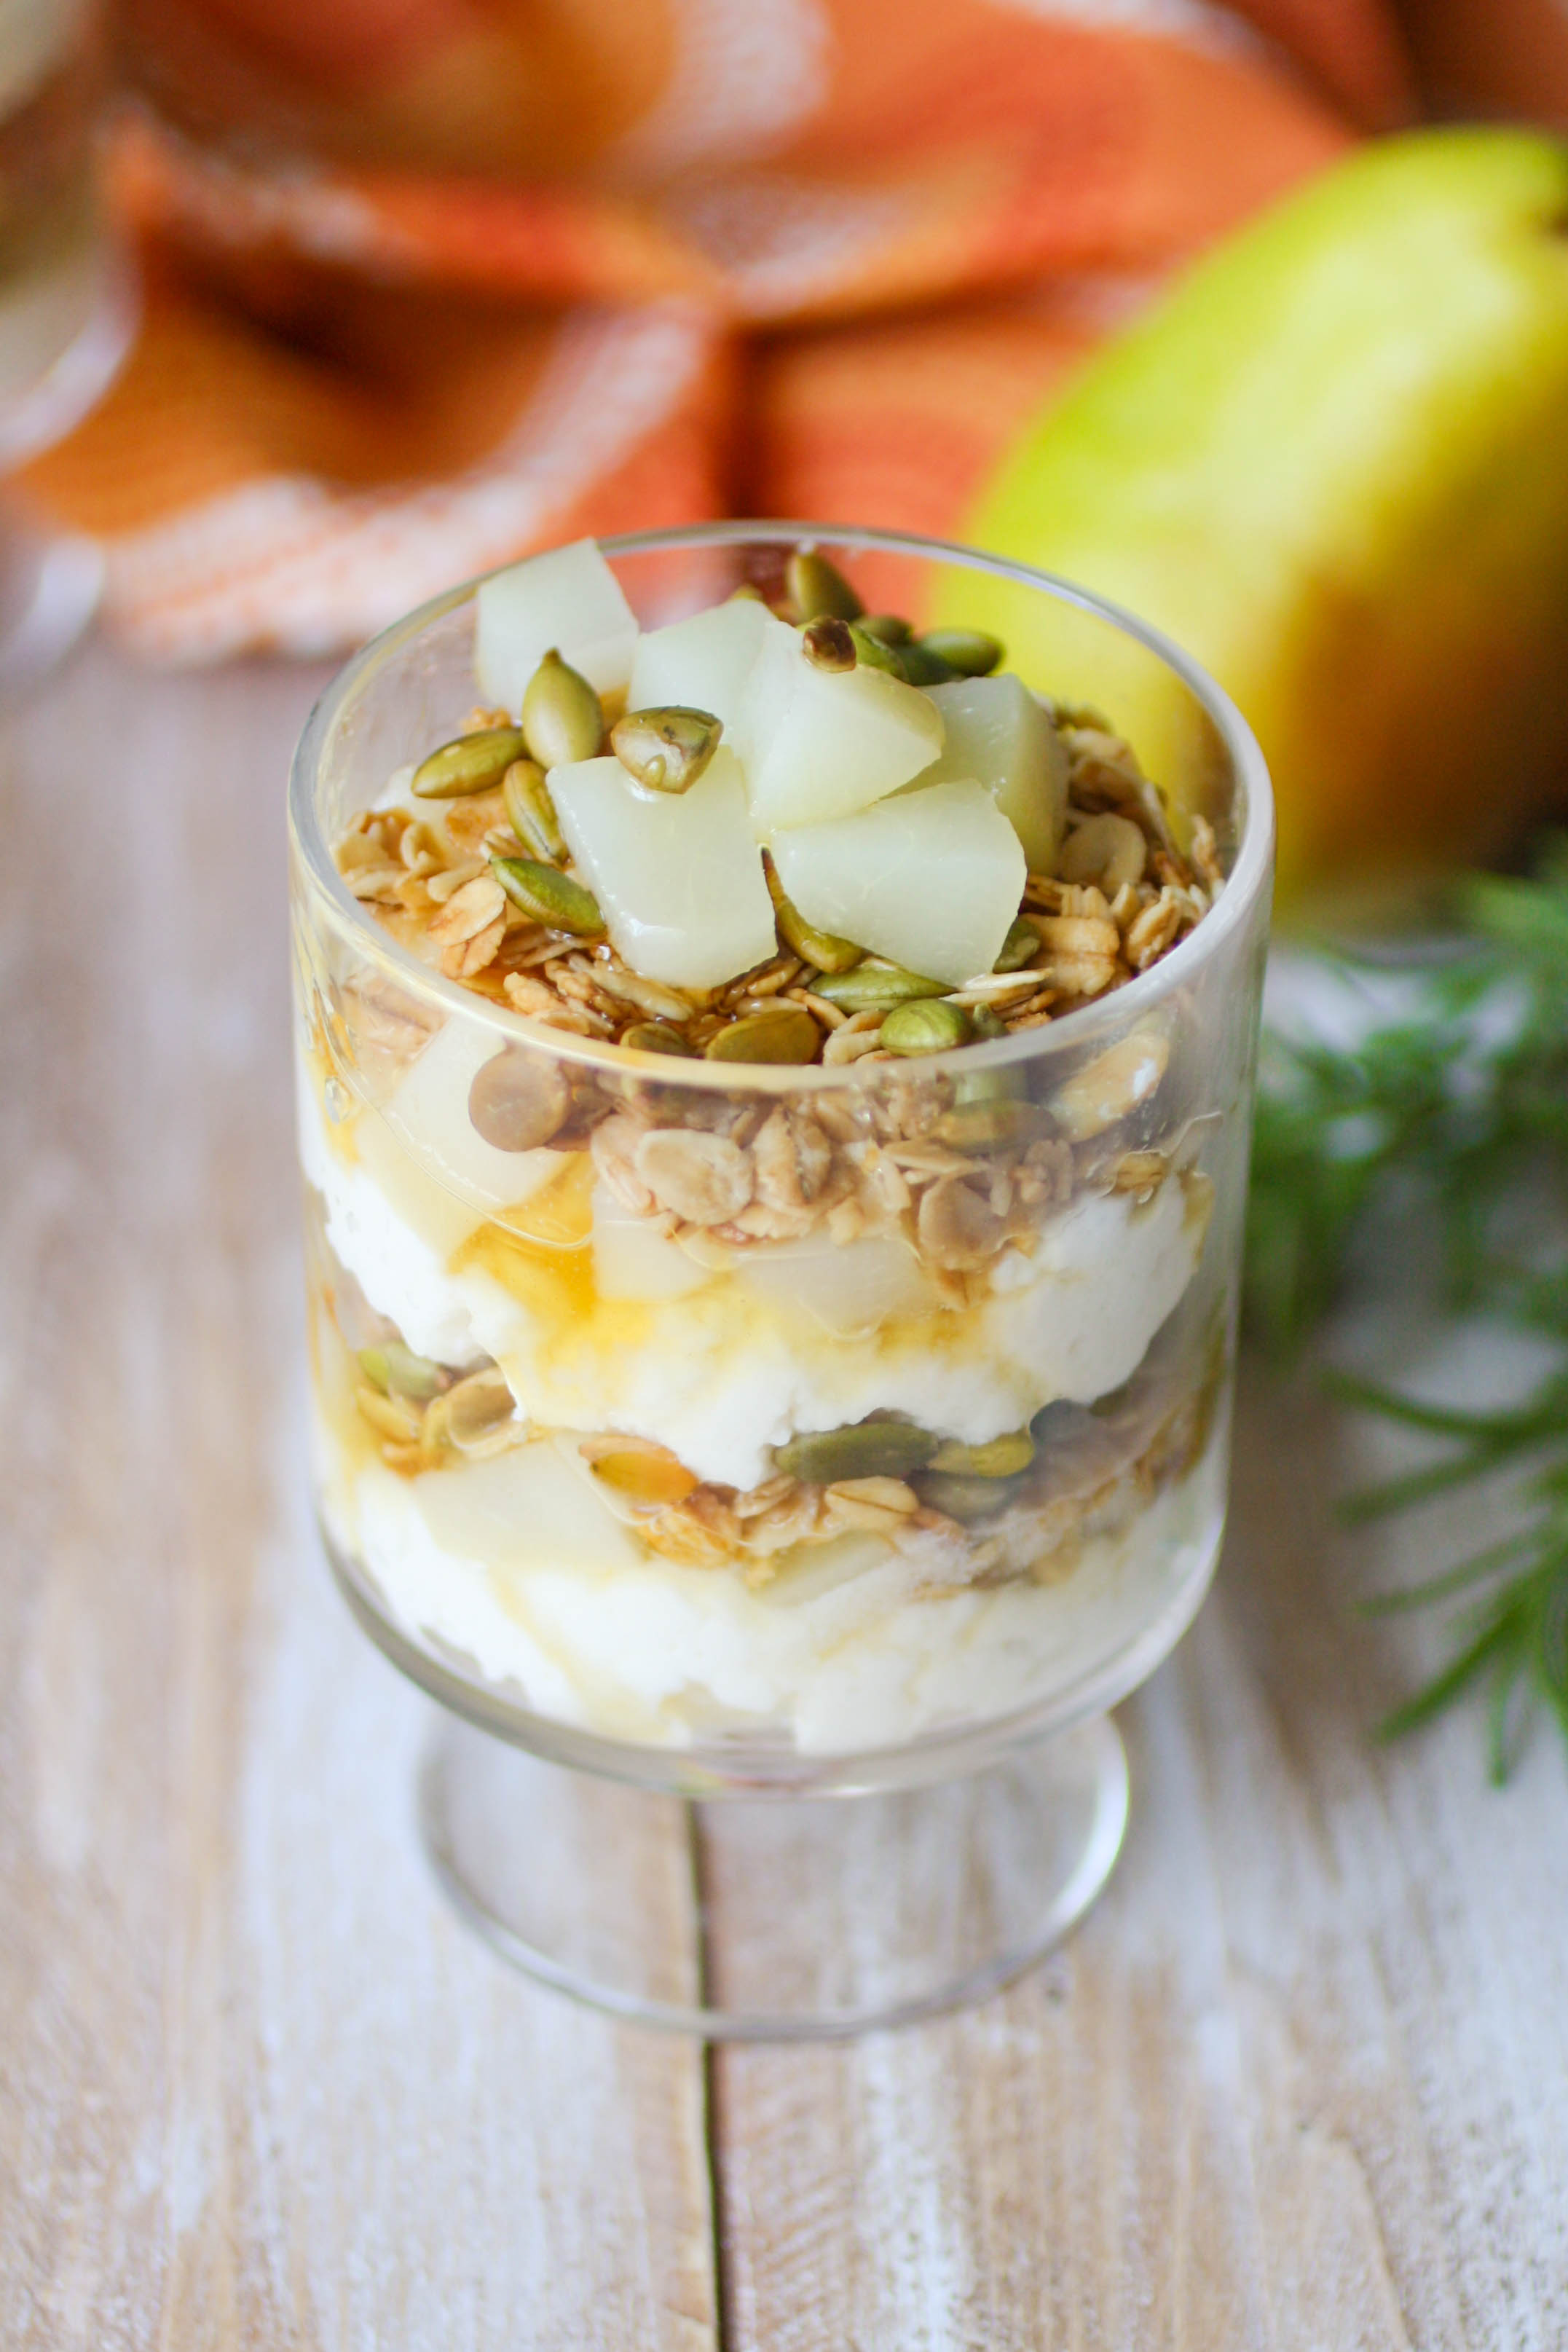 Pear and Ricotta Parfaits with Rosemary-Infused Honey are perfect for breakfast, or for a simple dessert. You'll love these pear parfaits and all their goodness!